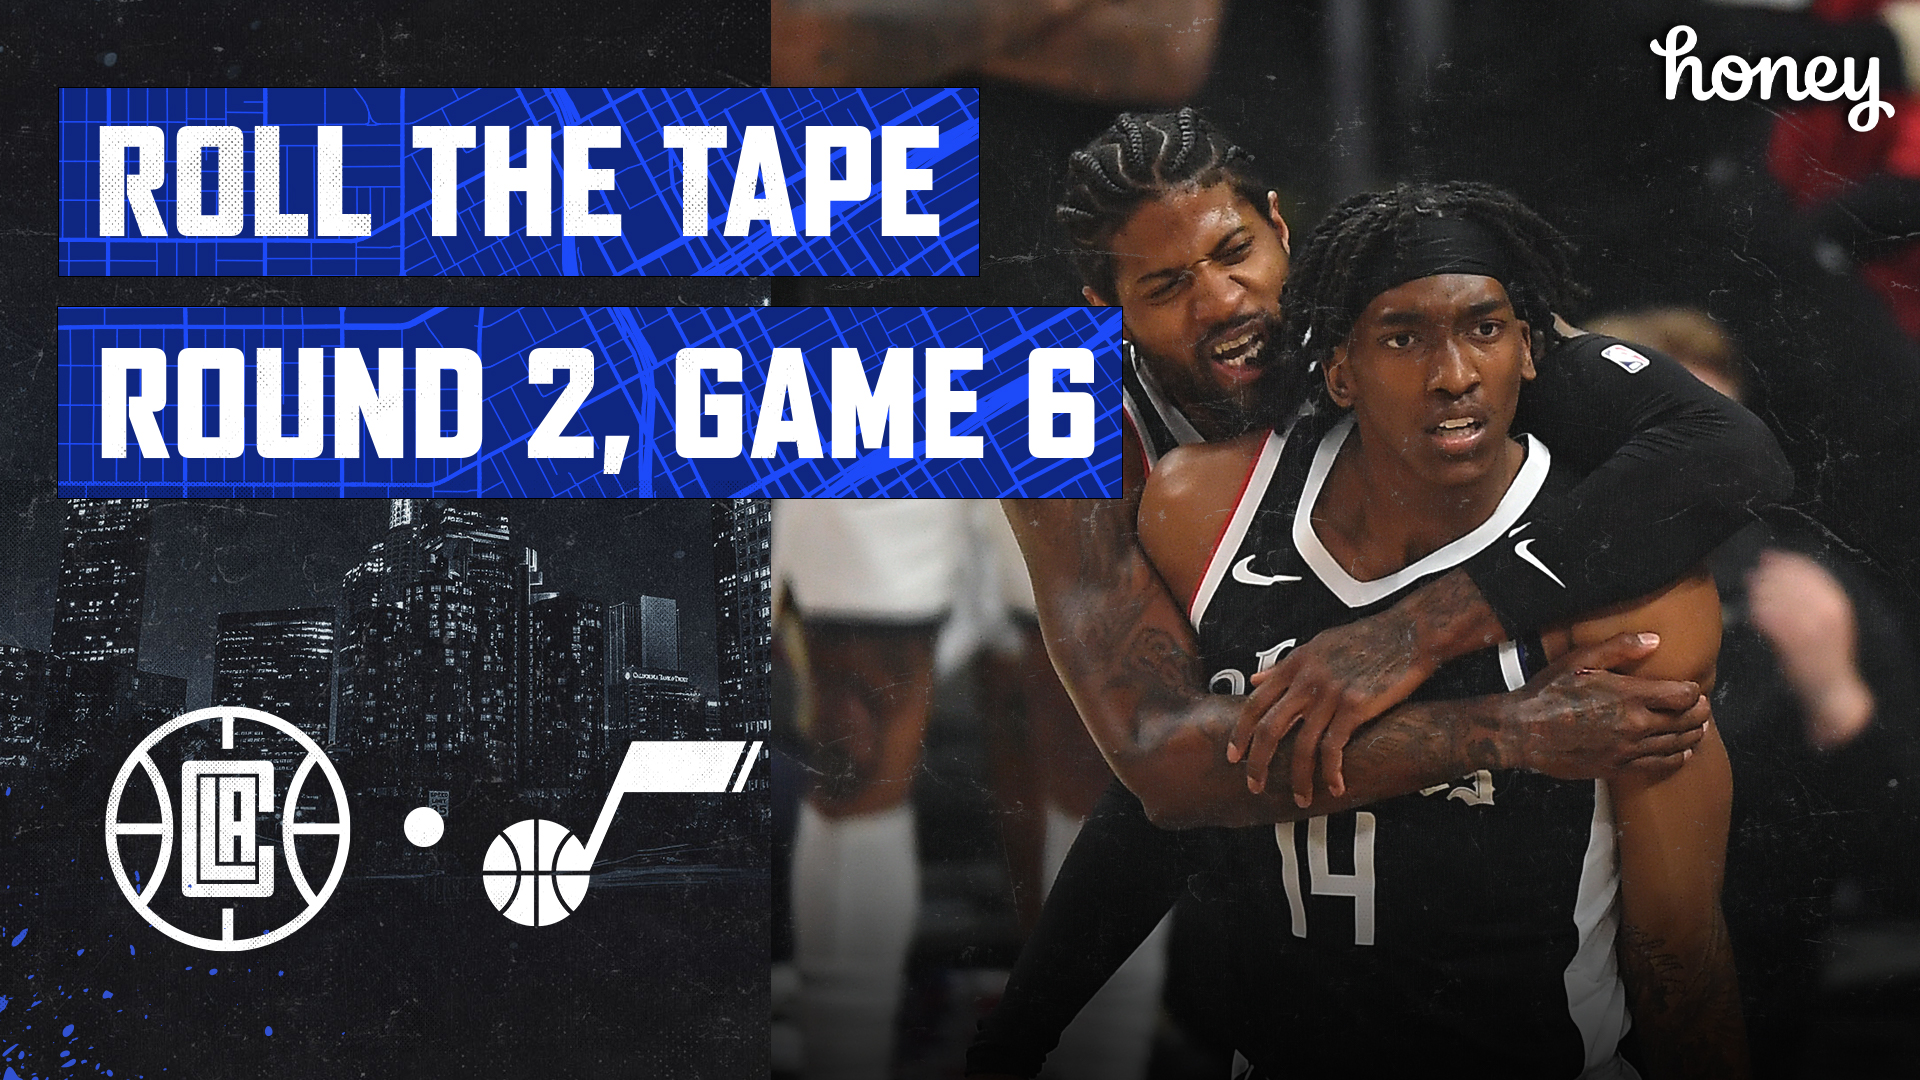 Roll The Tape | Clippers Clinch Series Over Jazz in Epic Fashion Game 6 (6.18.21)